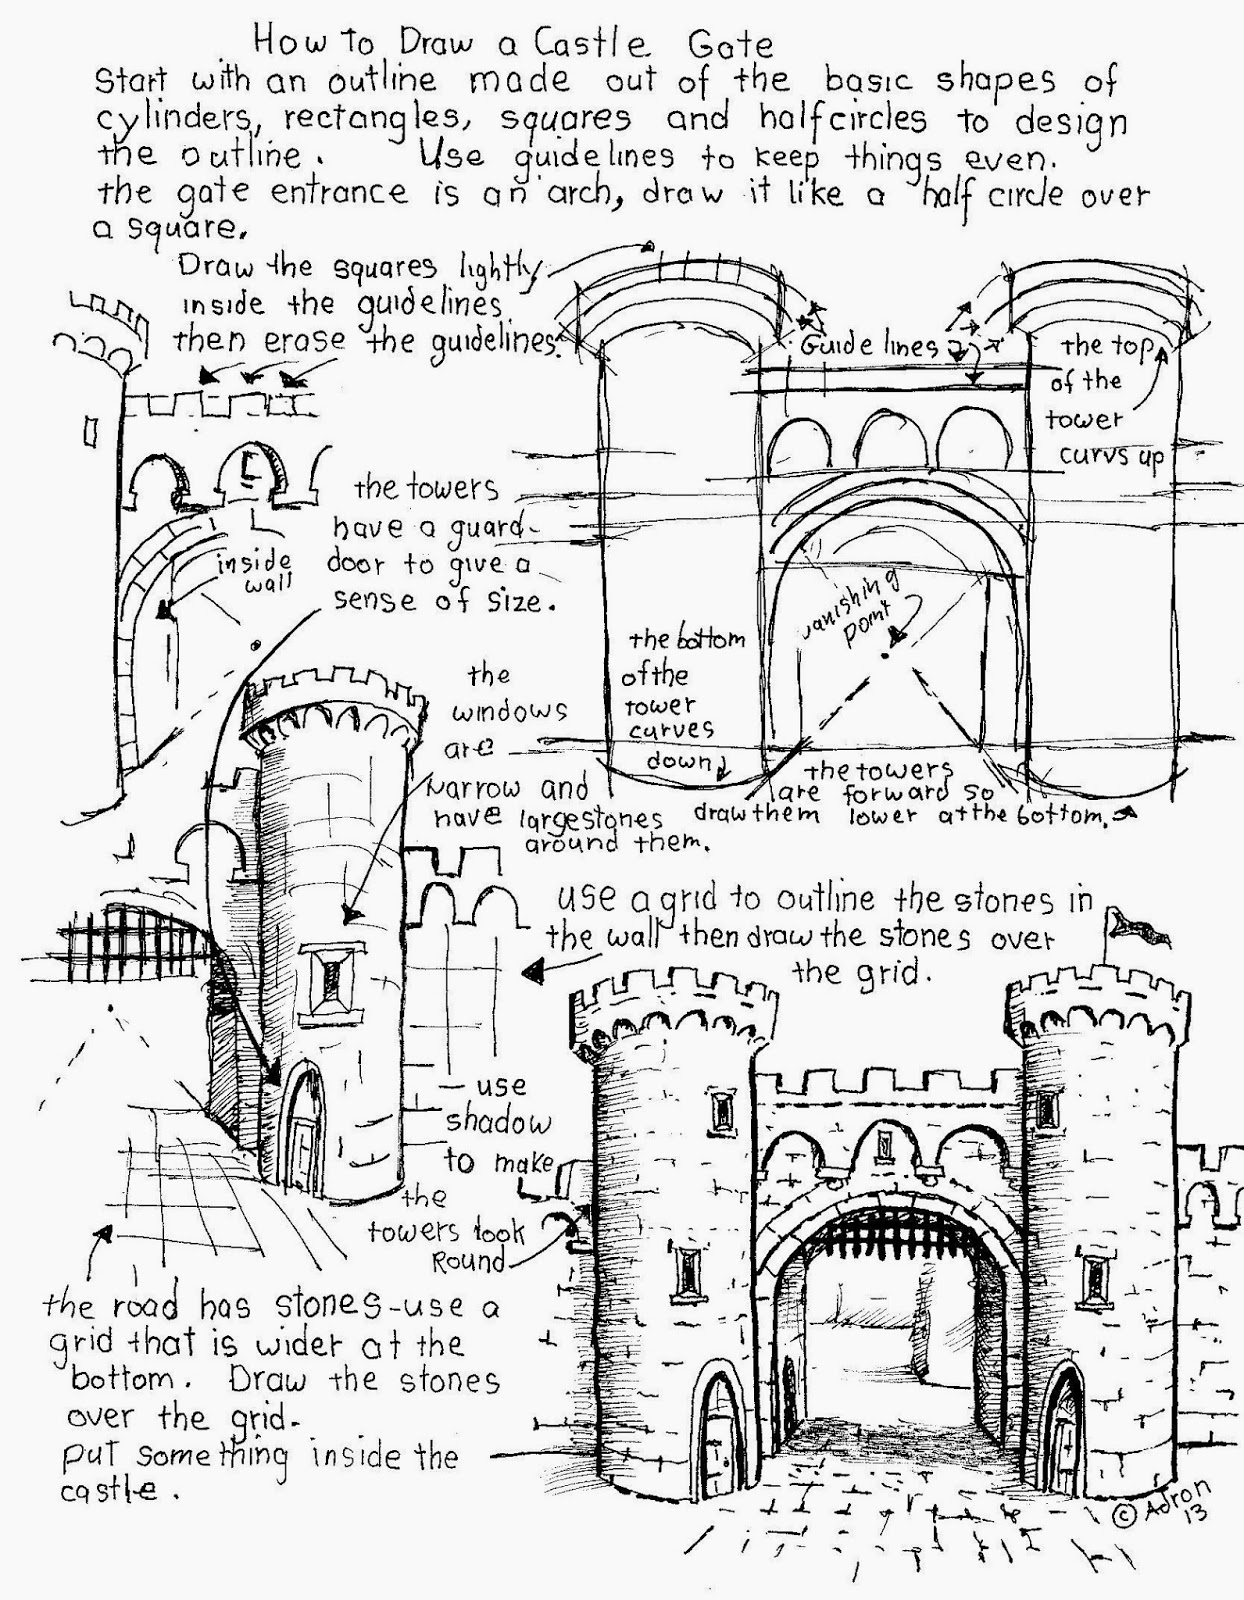 How To Draw Worksheets For The Young Artist How To Draw A Castle Gate Worksheet